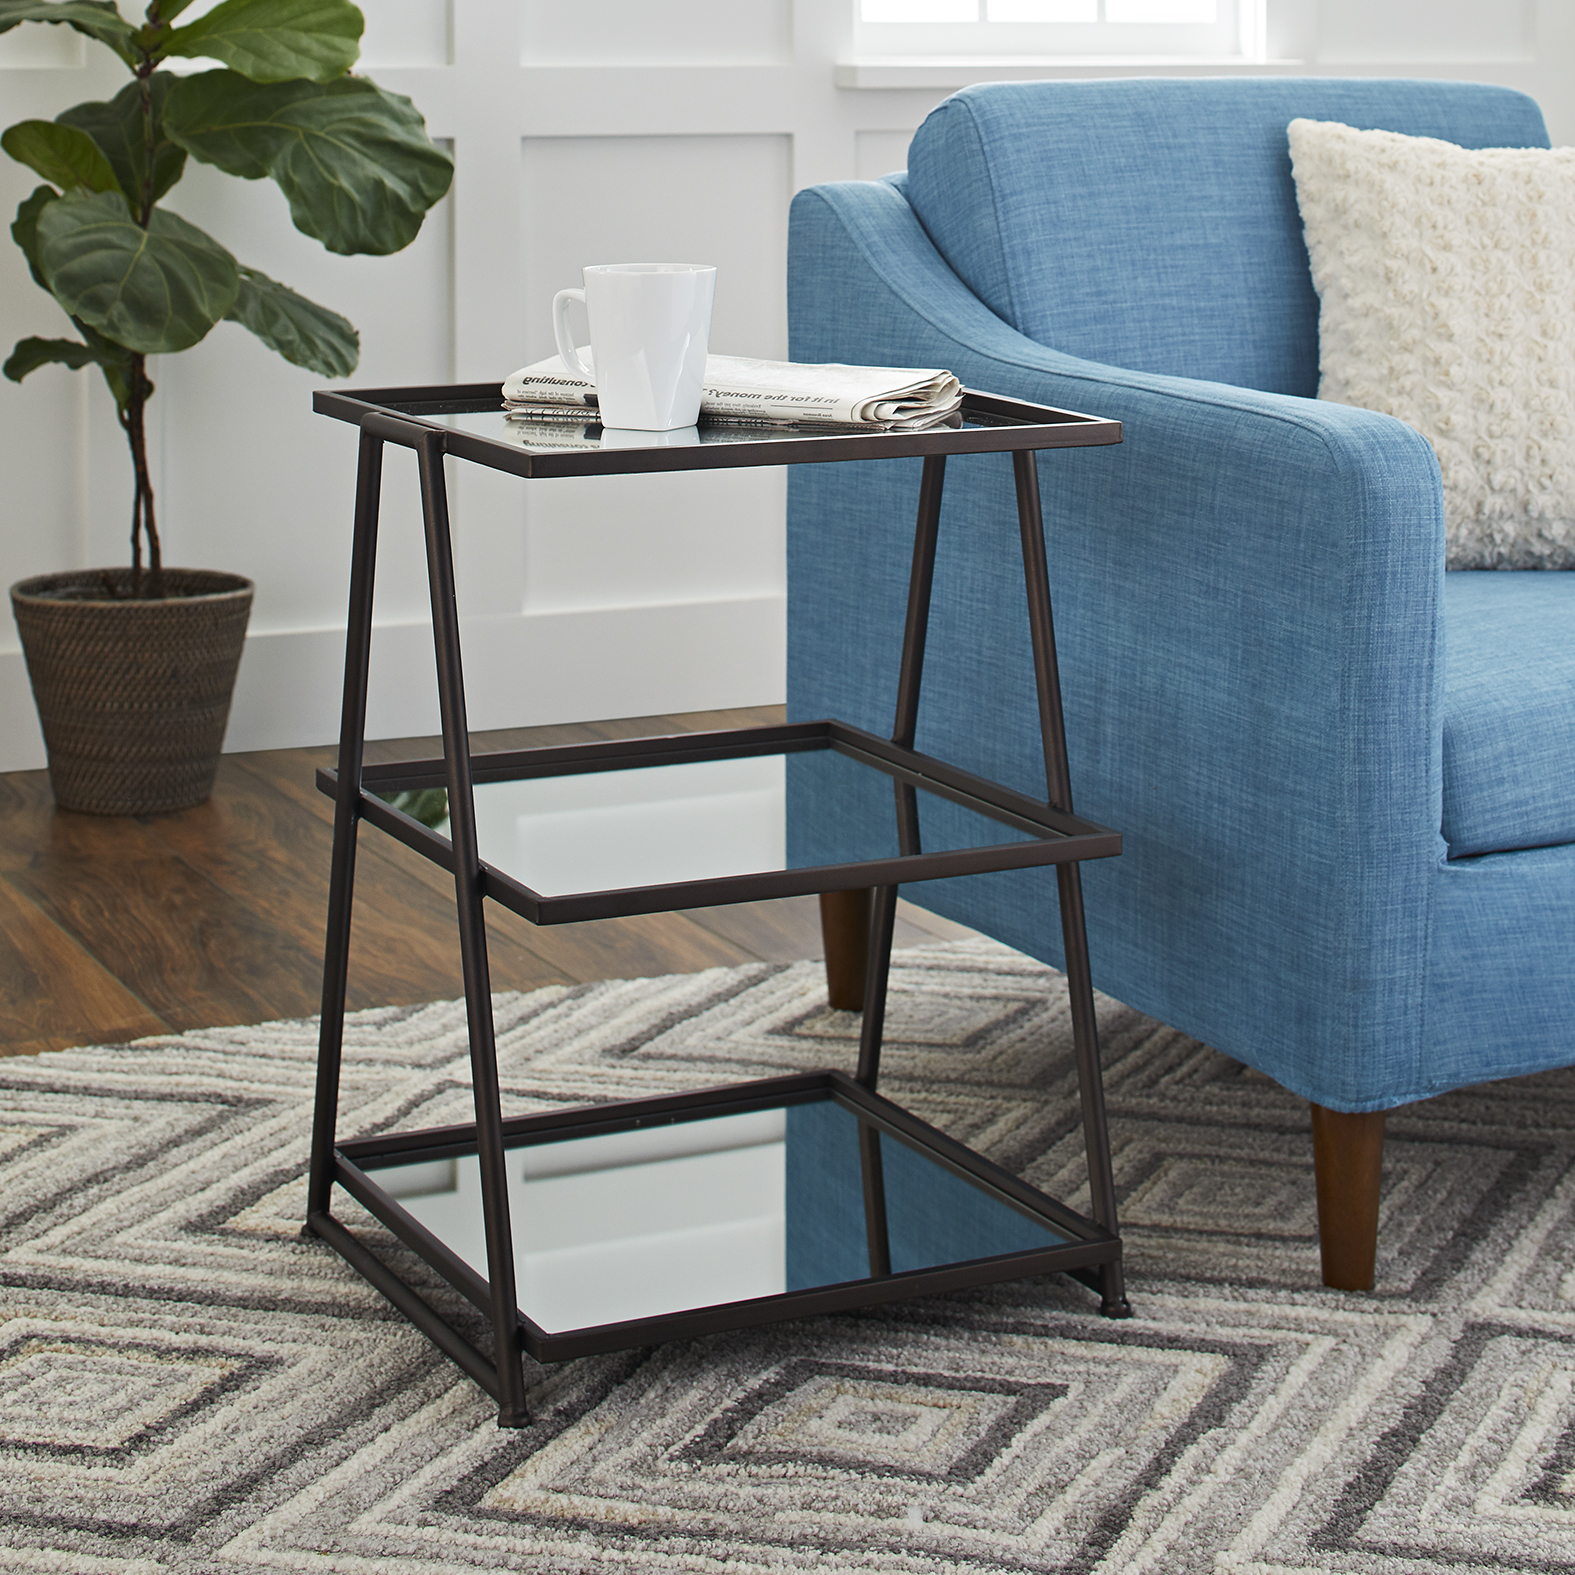 Better Homes and Gardens Metal & Mirrored 3 Shelf Accent Table, Gunmetal